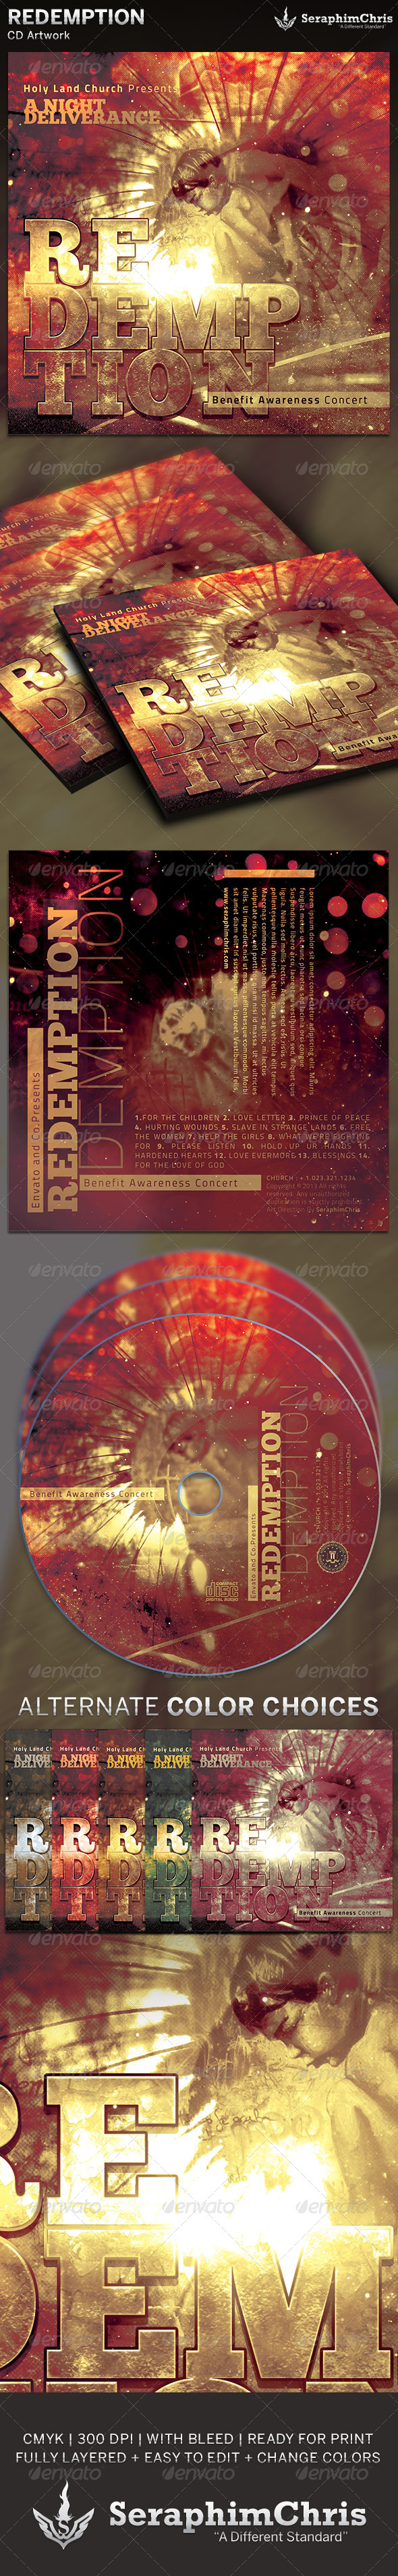 Redemption Benefit Concert: CD Artwork Template - CD &amp; DVD artwork Print Templates